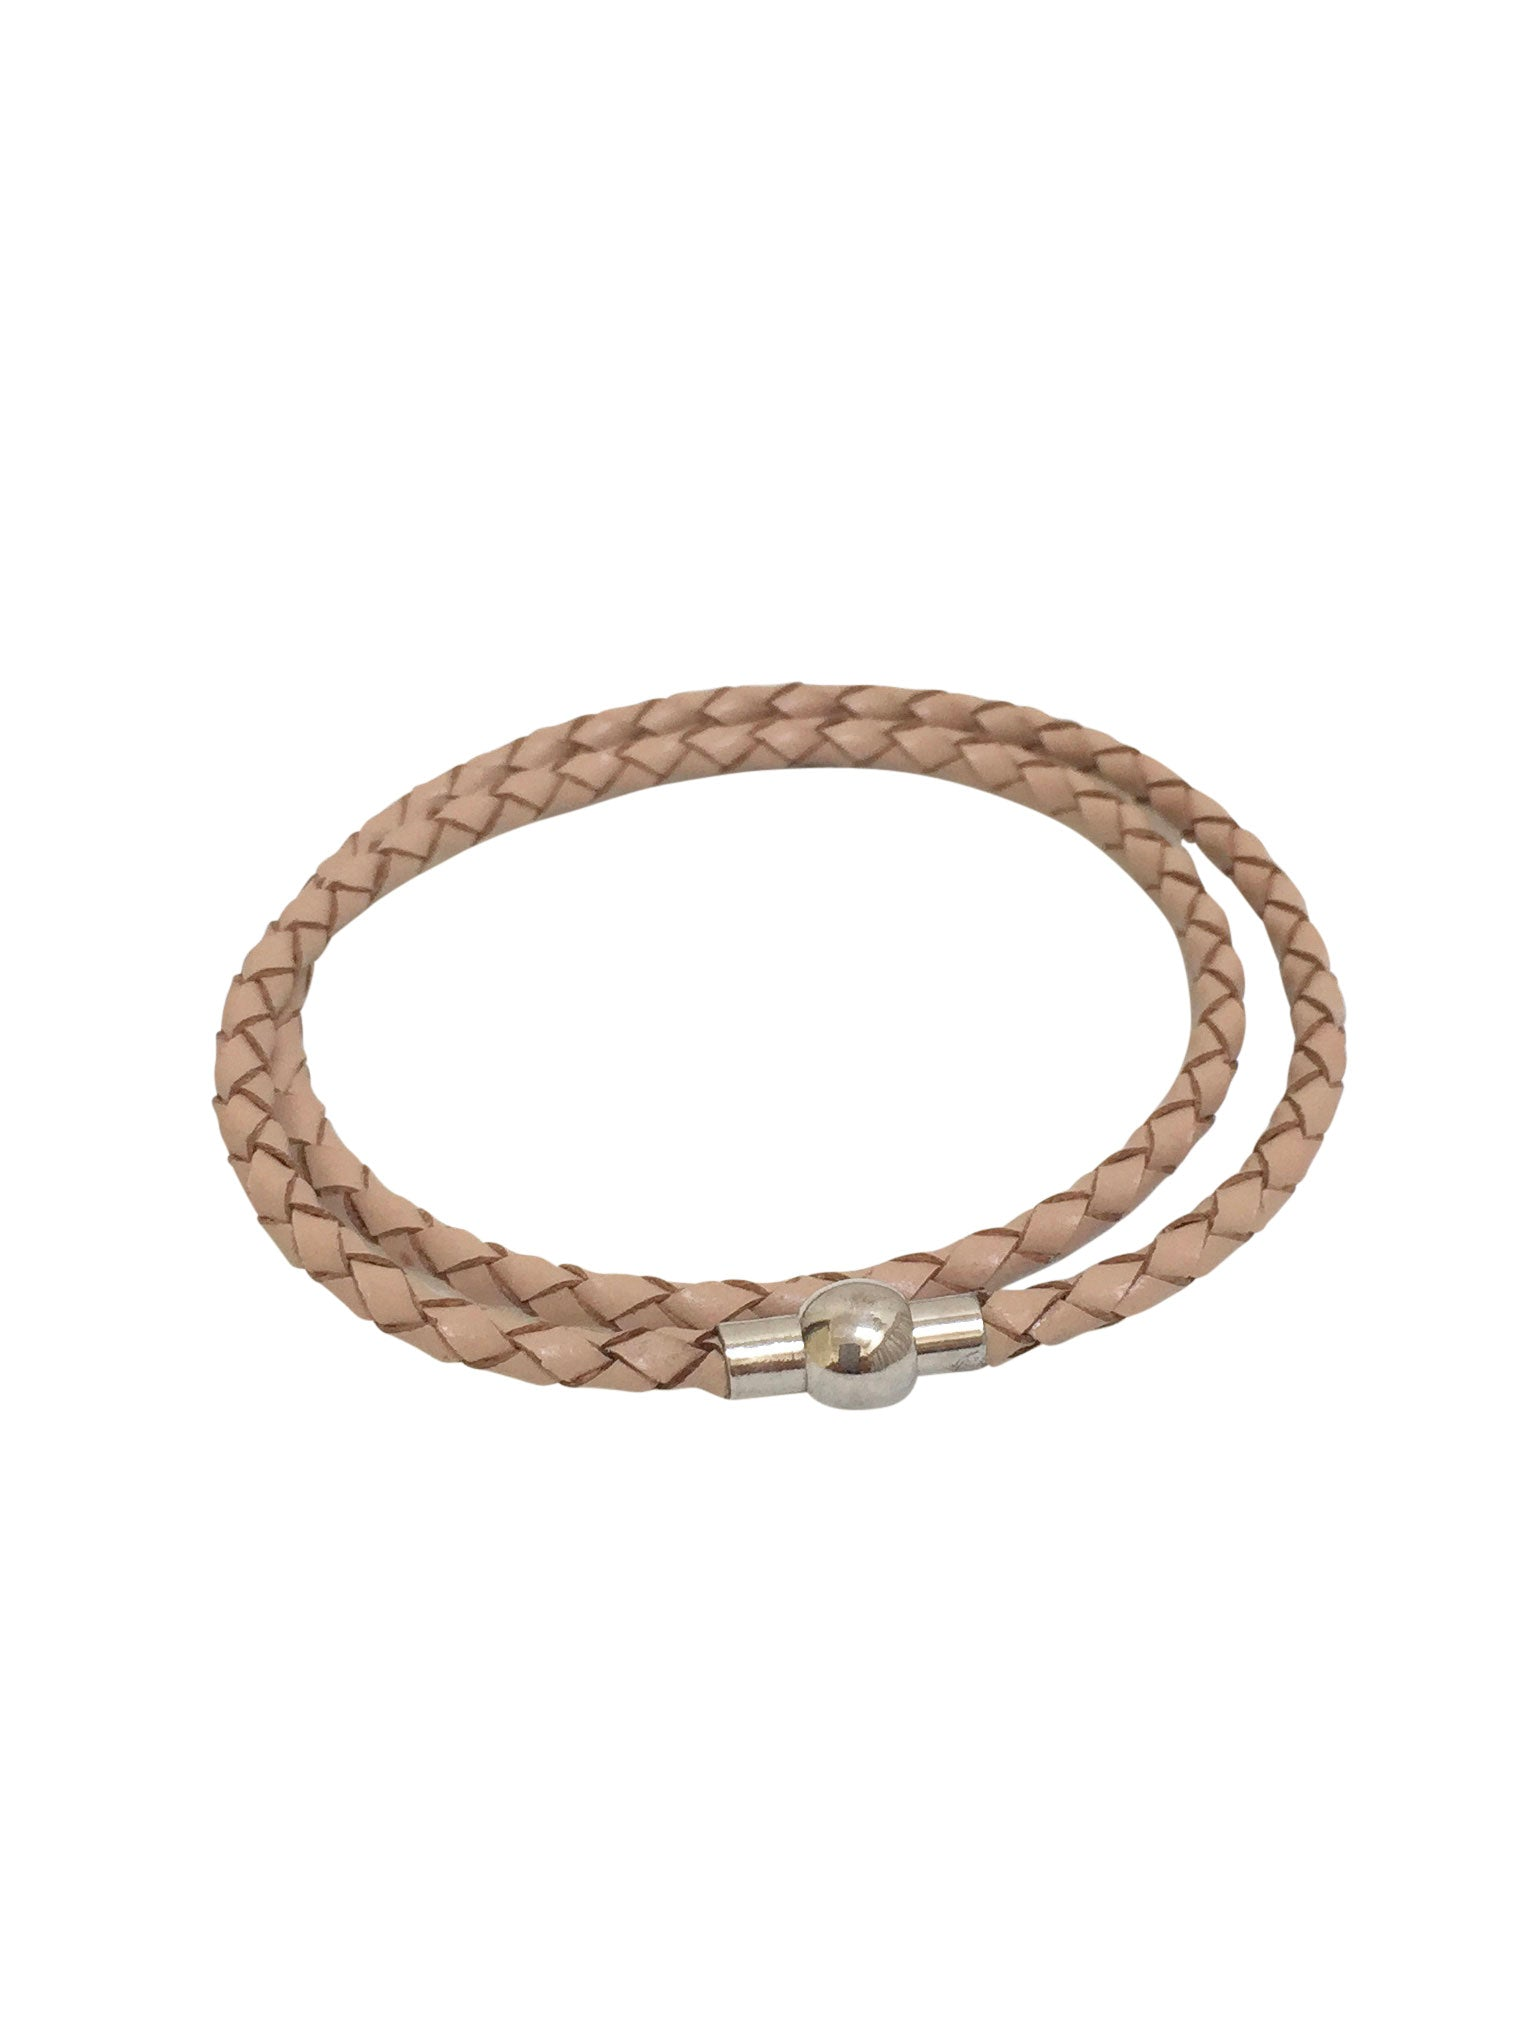 Leather Braided Double Bracelet